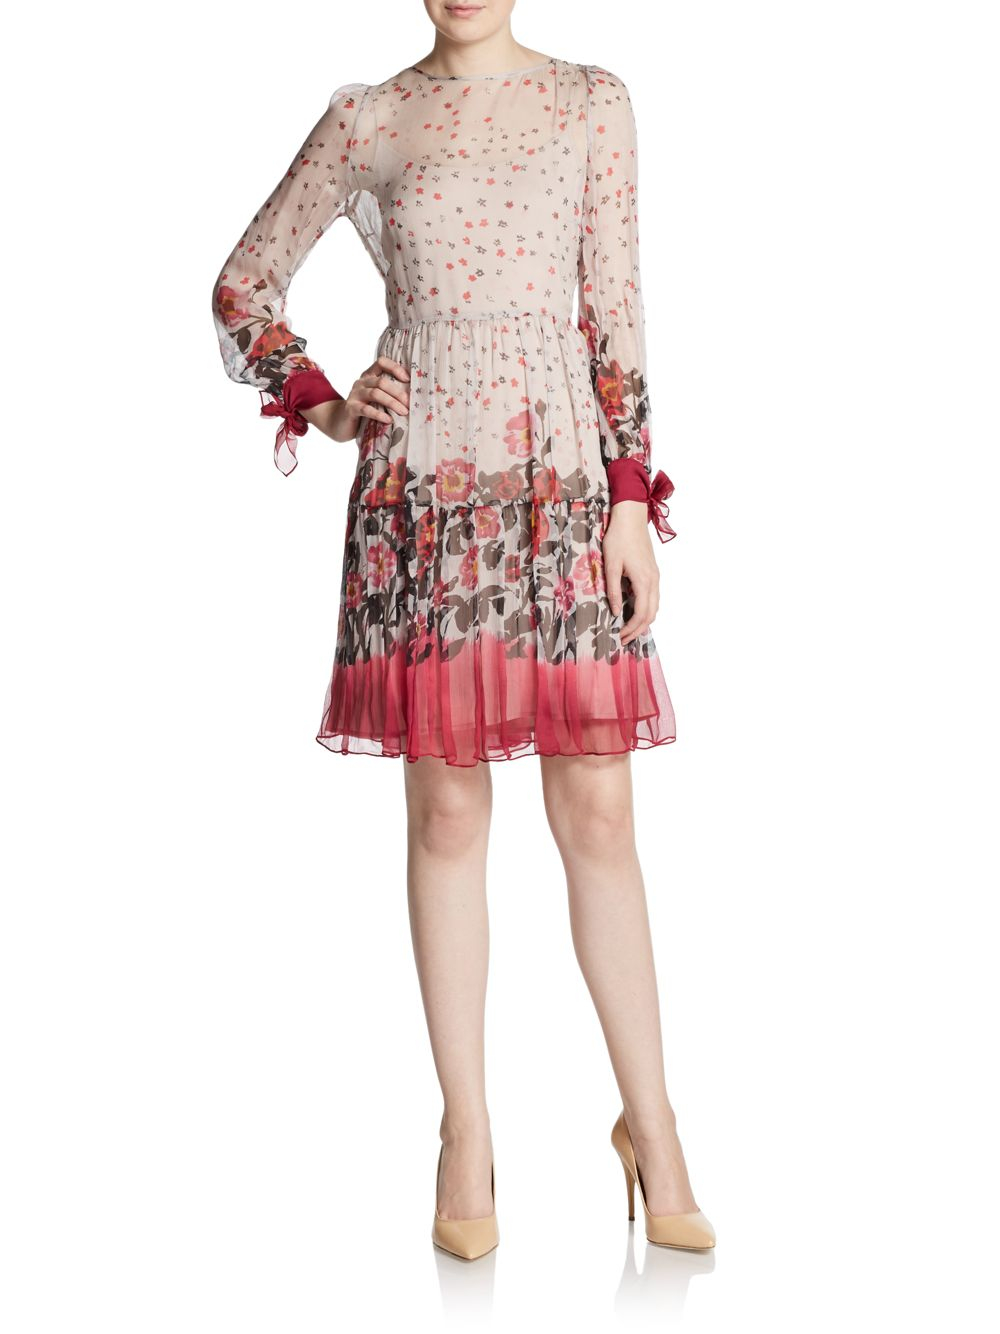 Floral-print chiffon dress Red Valentino Extremely Online Sast Online Top Quality For Sale New Styles Cheap Online mN7xWP3sf